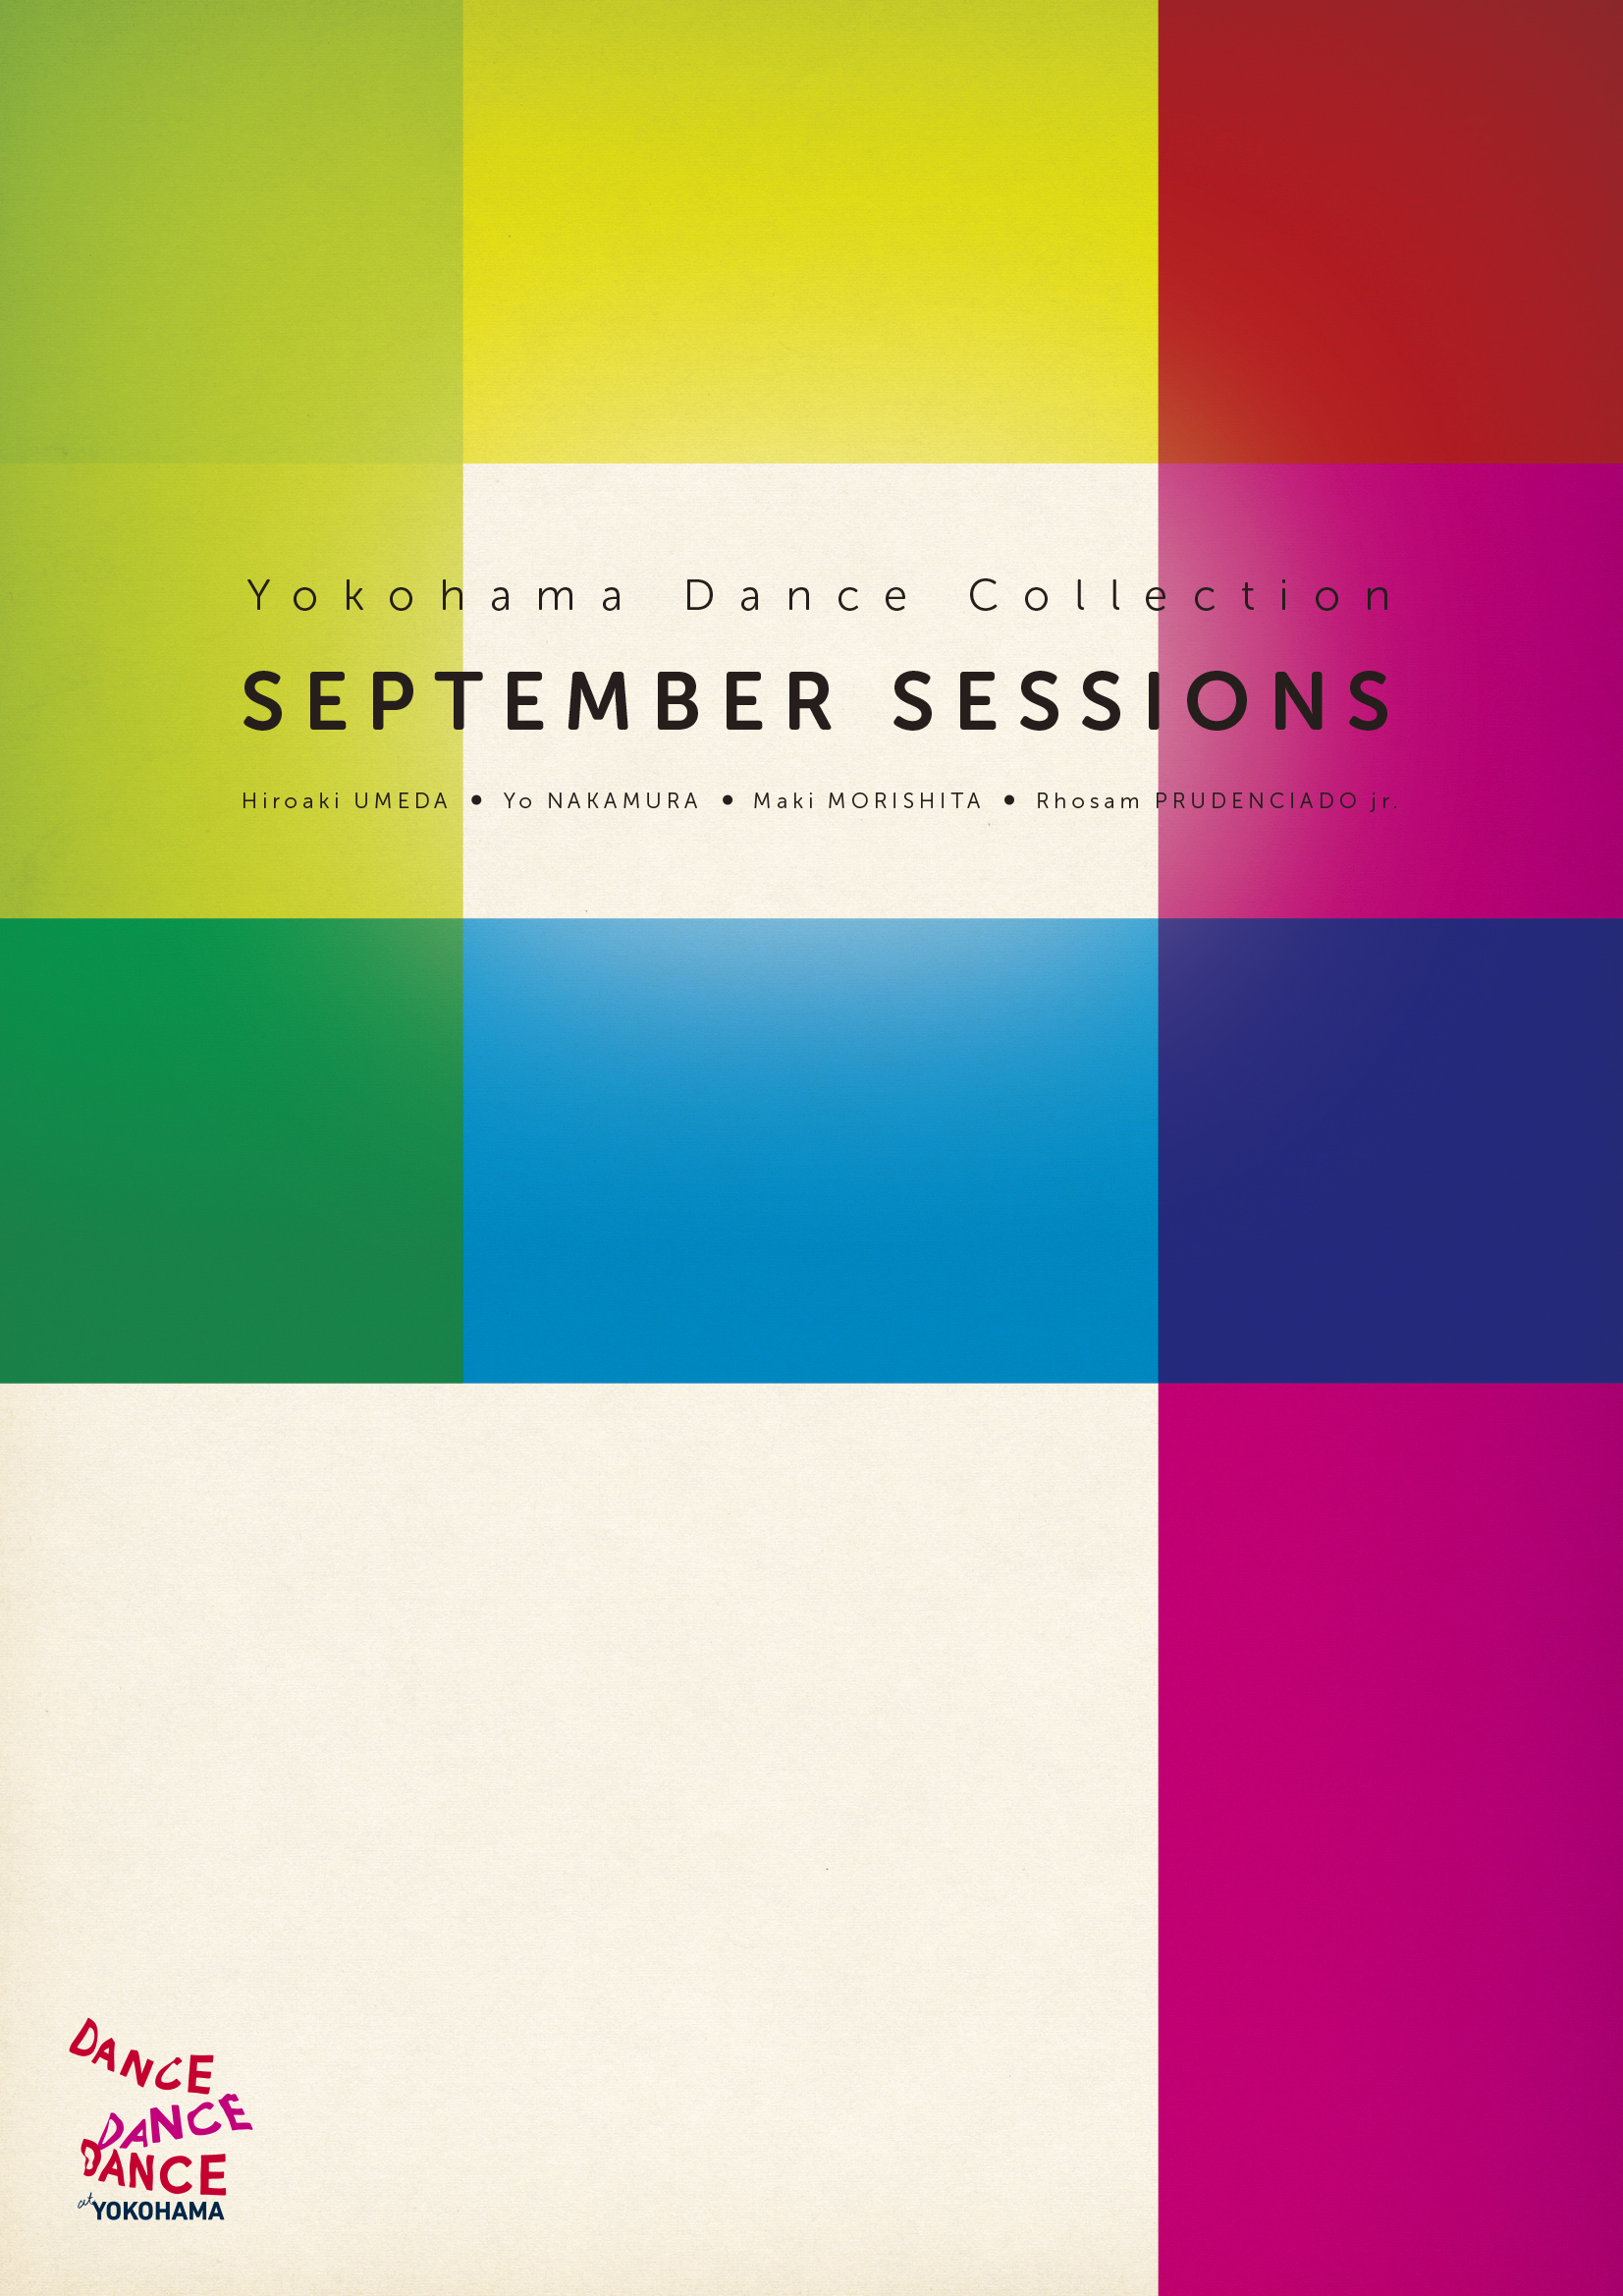 SEPEMBER SESSIONS